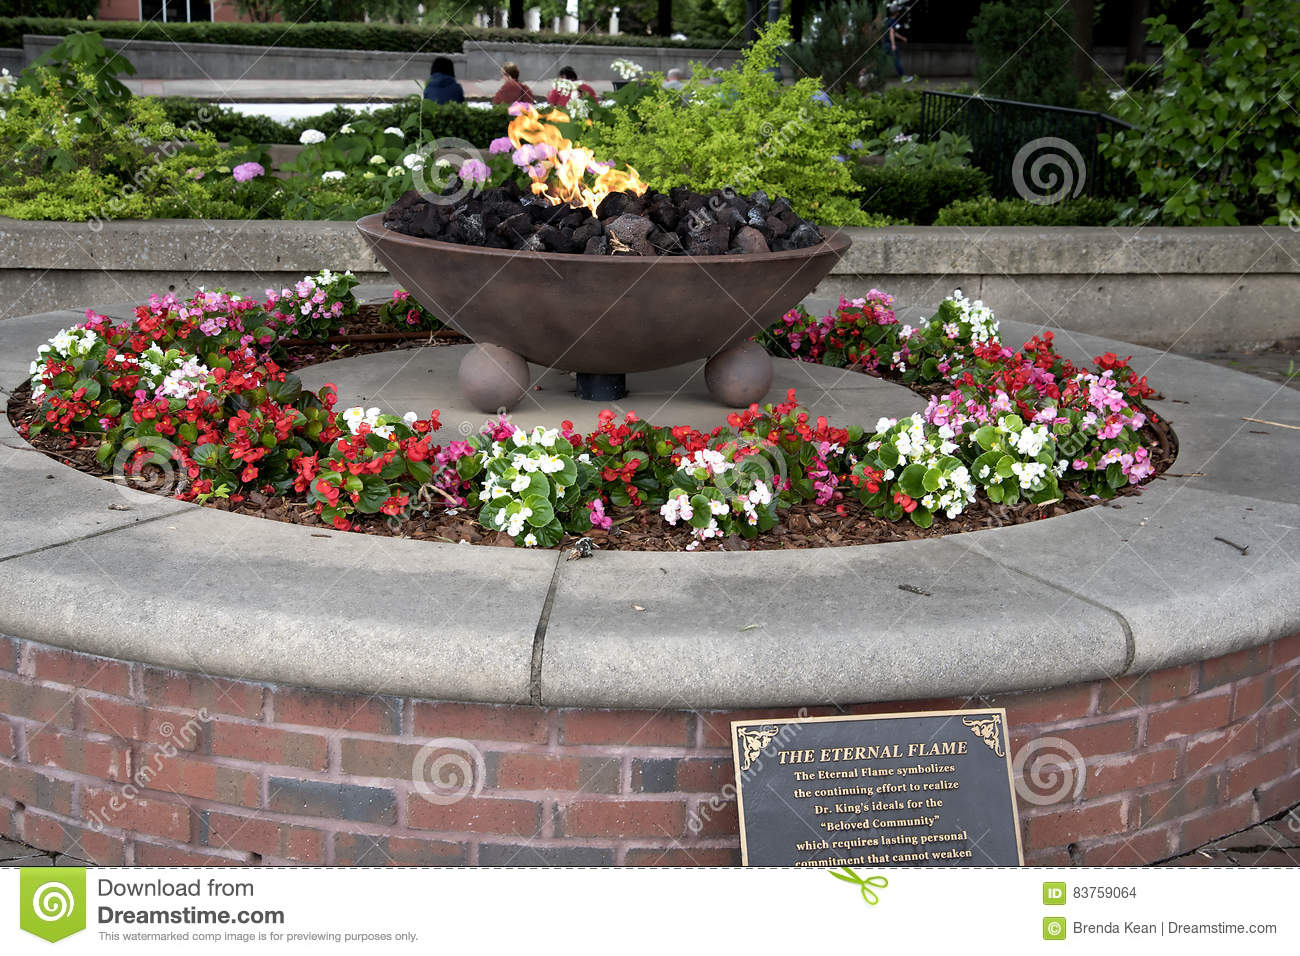 The Eternal Flame At The Memorial Centre To Dr Martin Luther King Jr